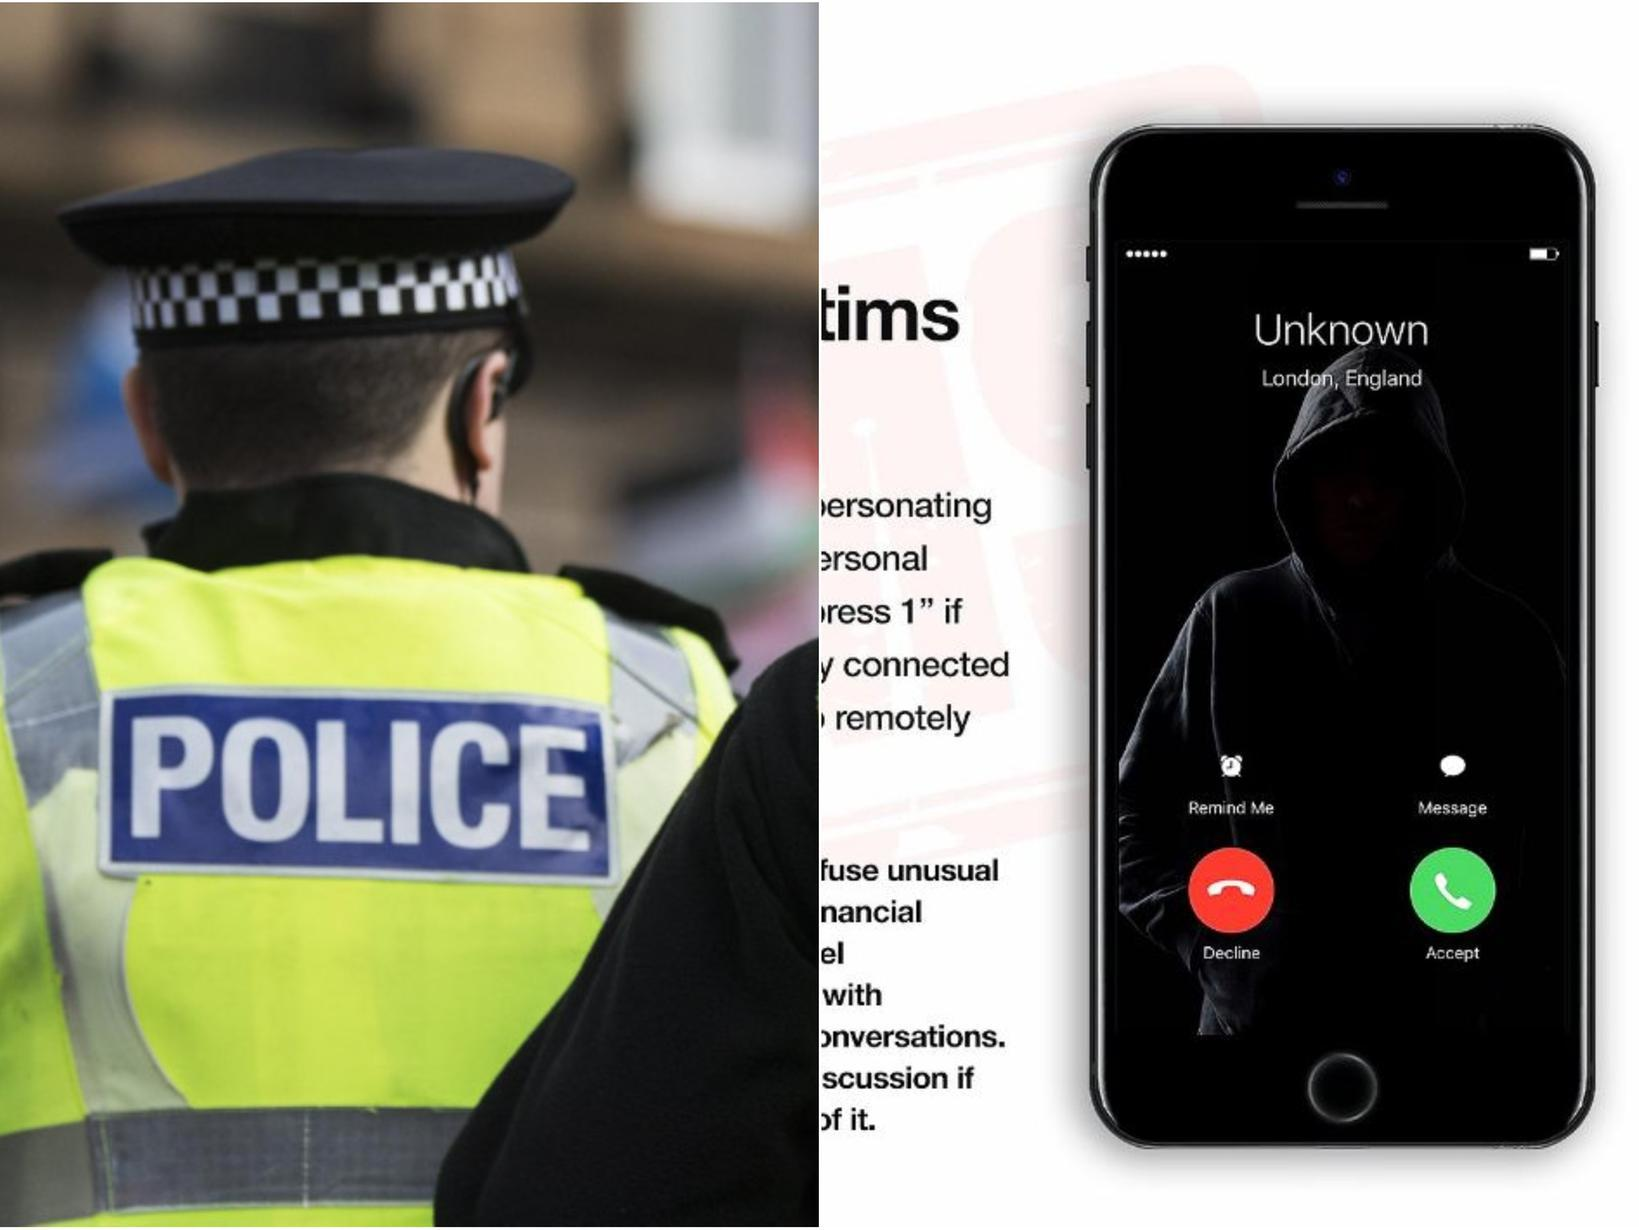 Edinburgh police share warning about Amazon Prime scam which has cost victims more than £1 million in three months